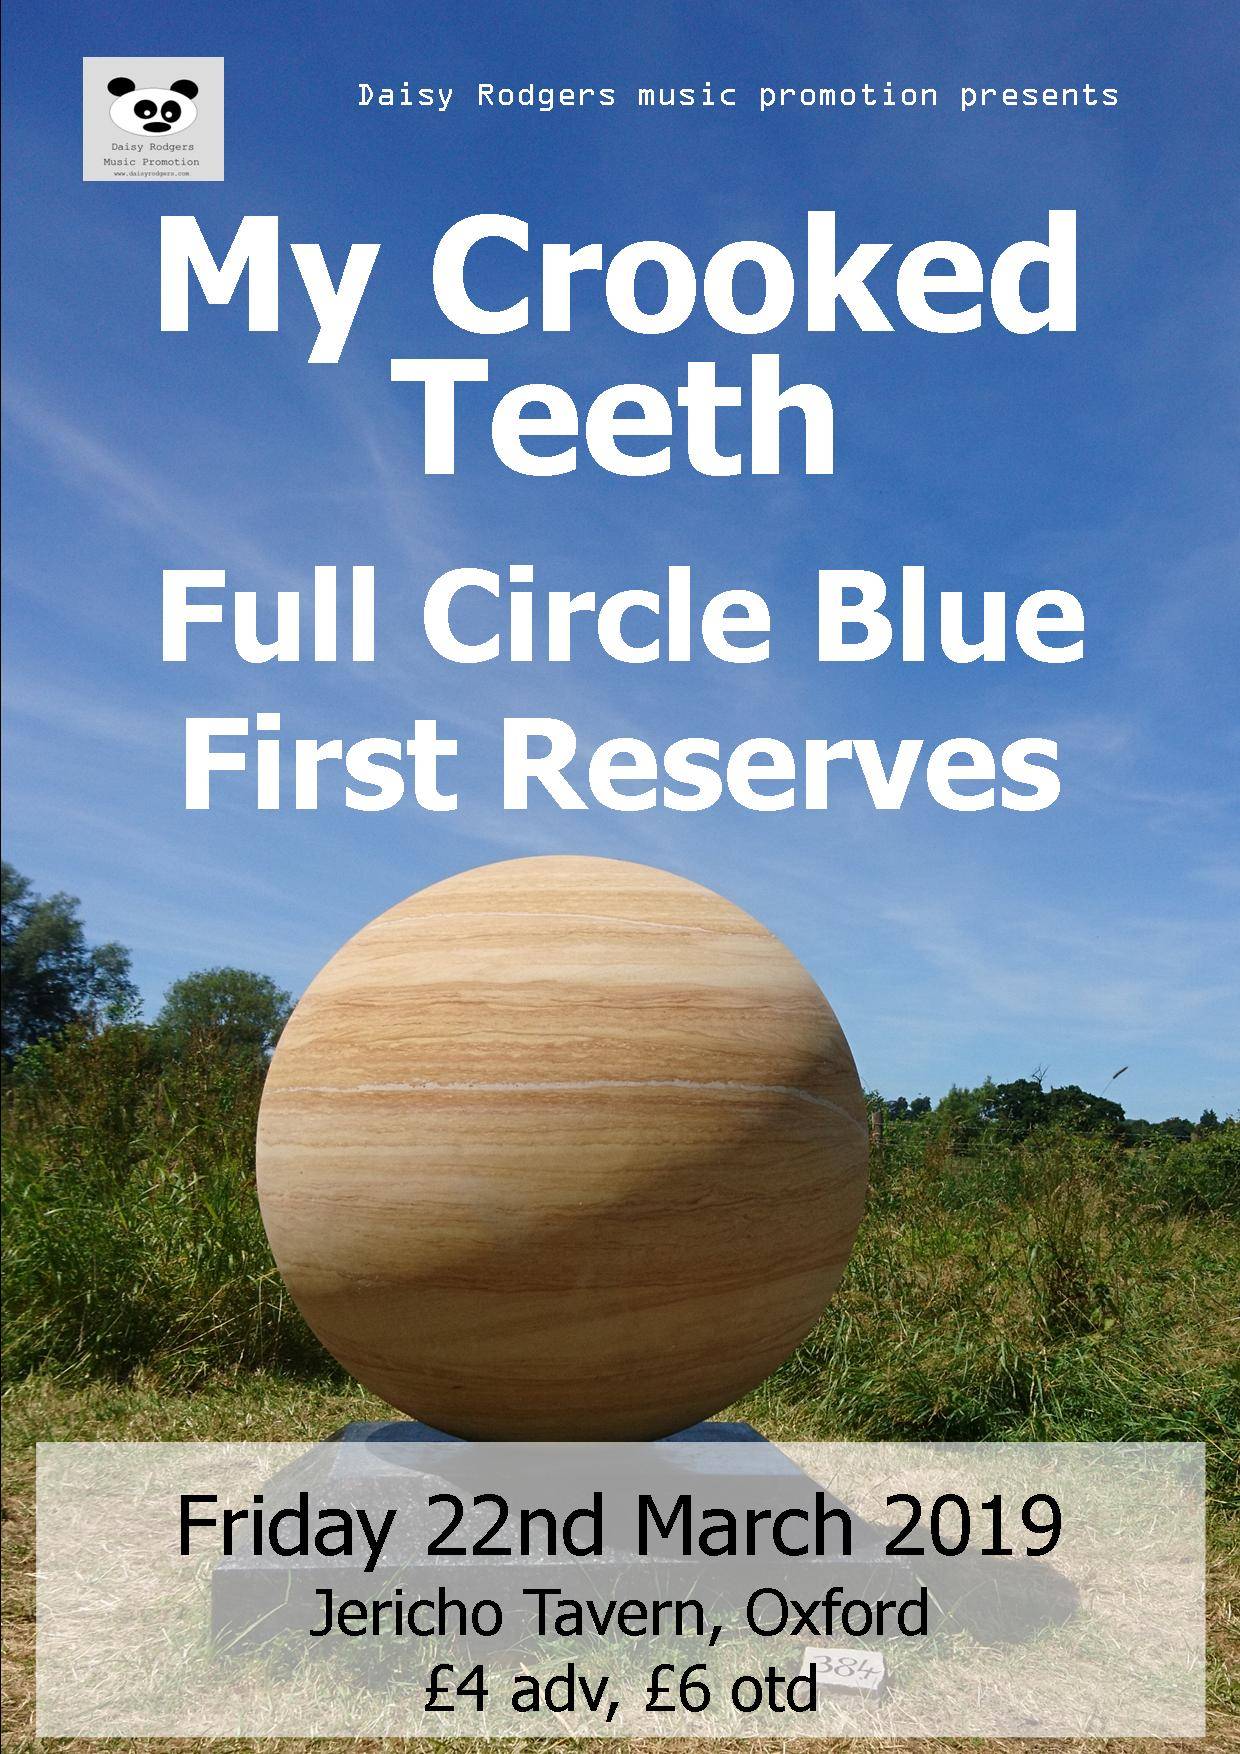 My Crooked Teeth + Full Circle Blue + First Reserves